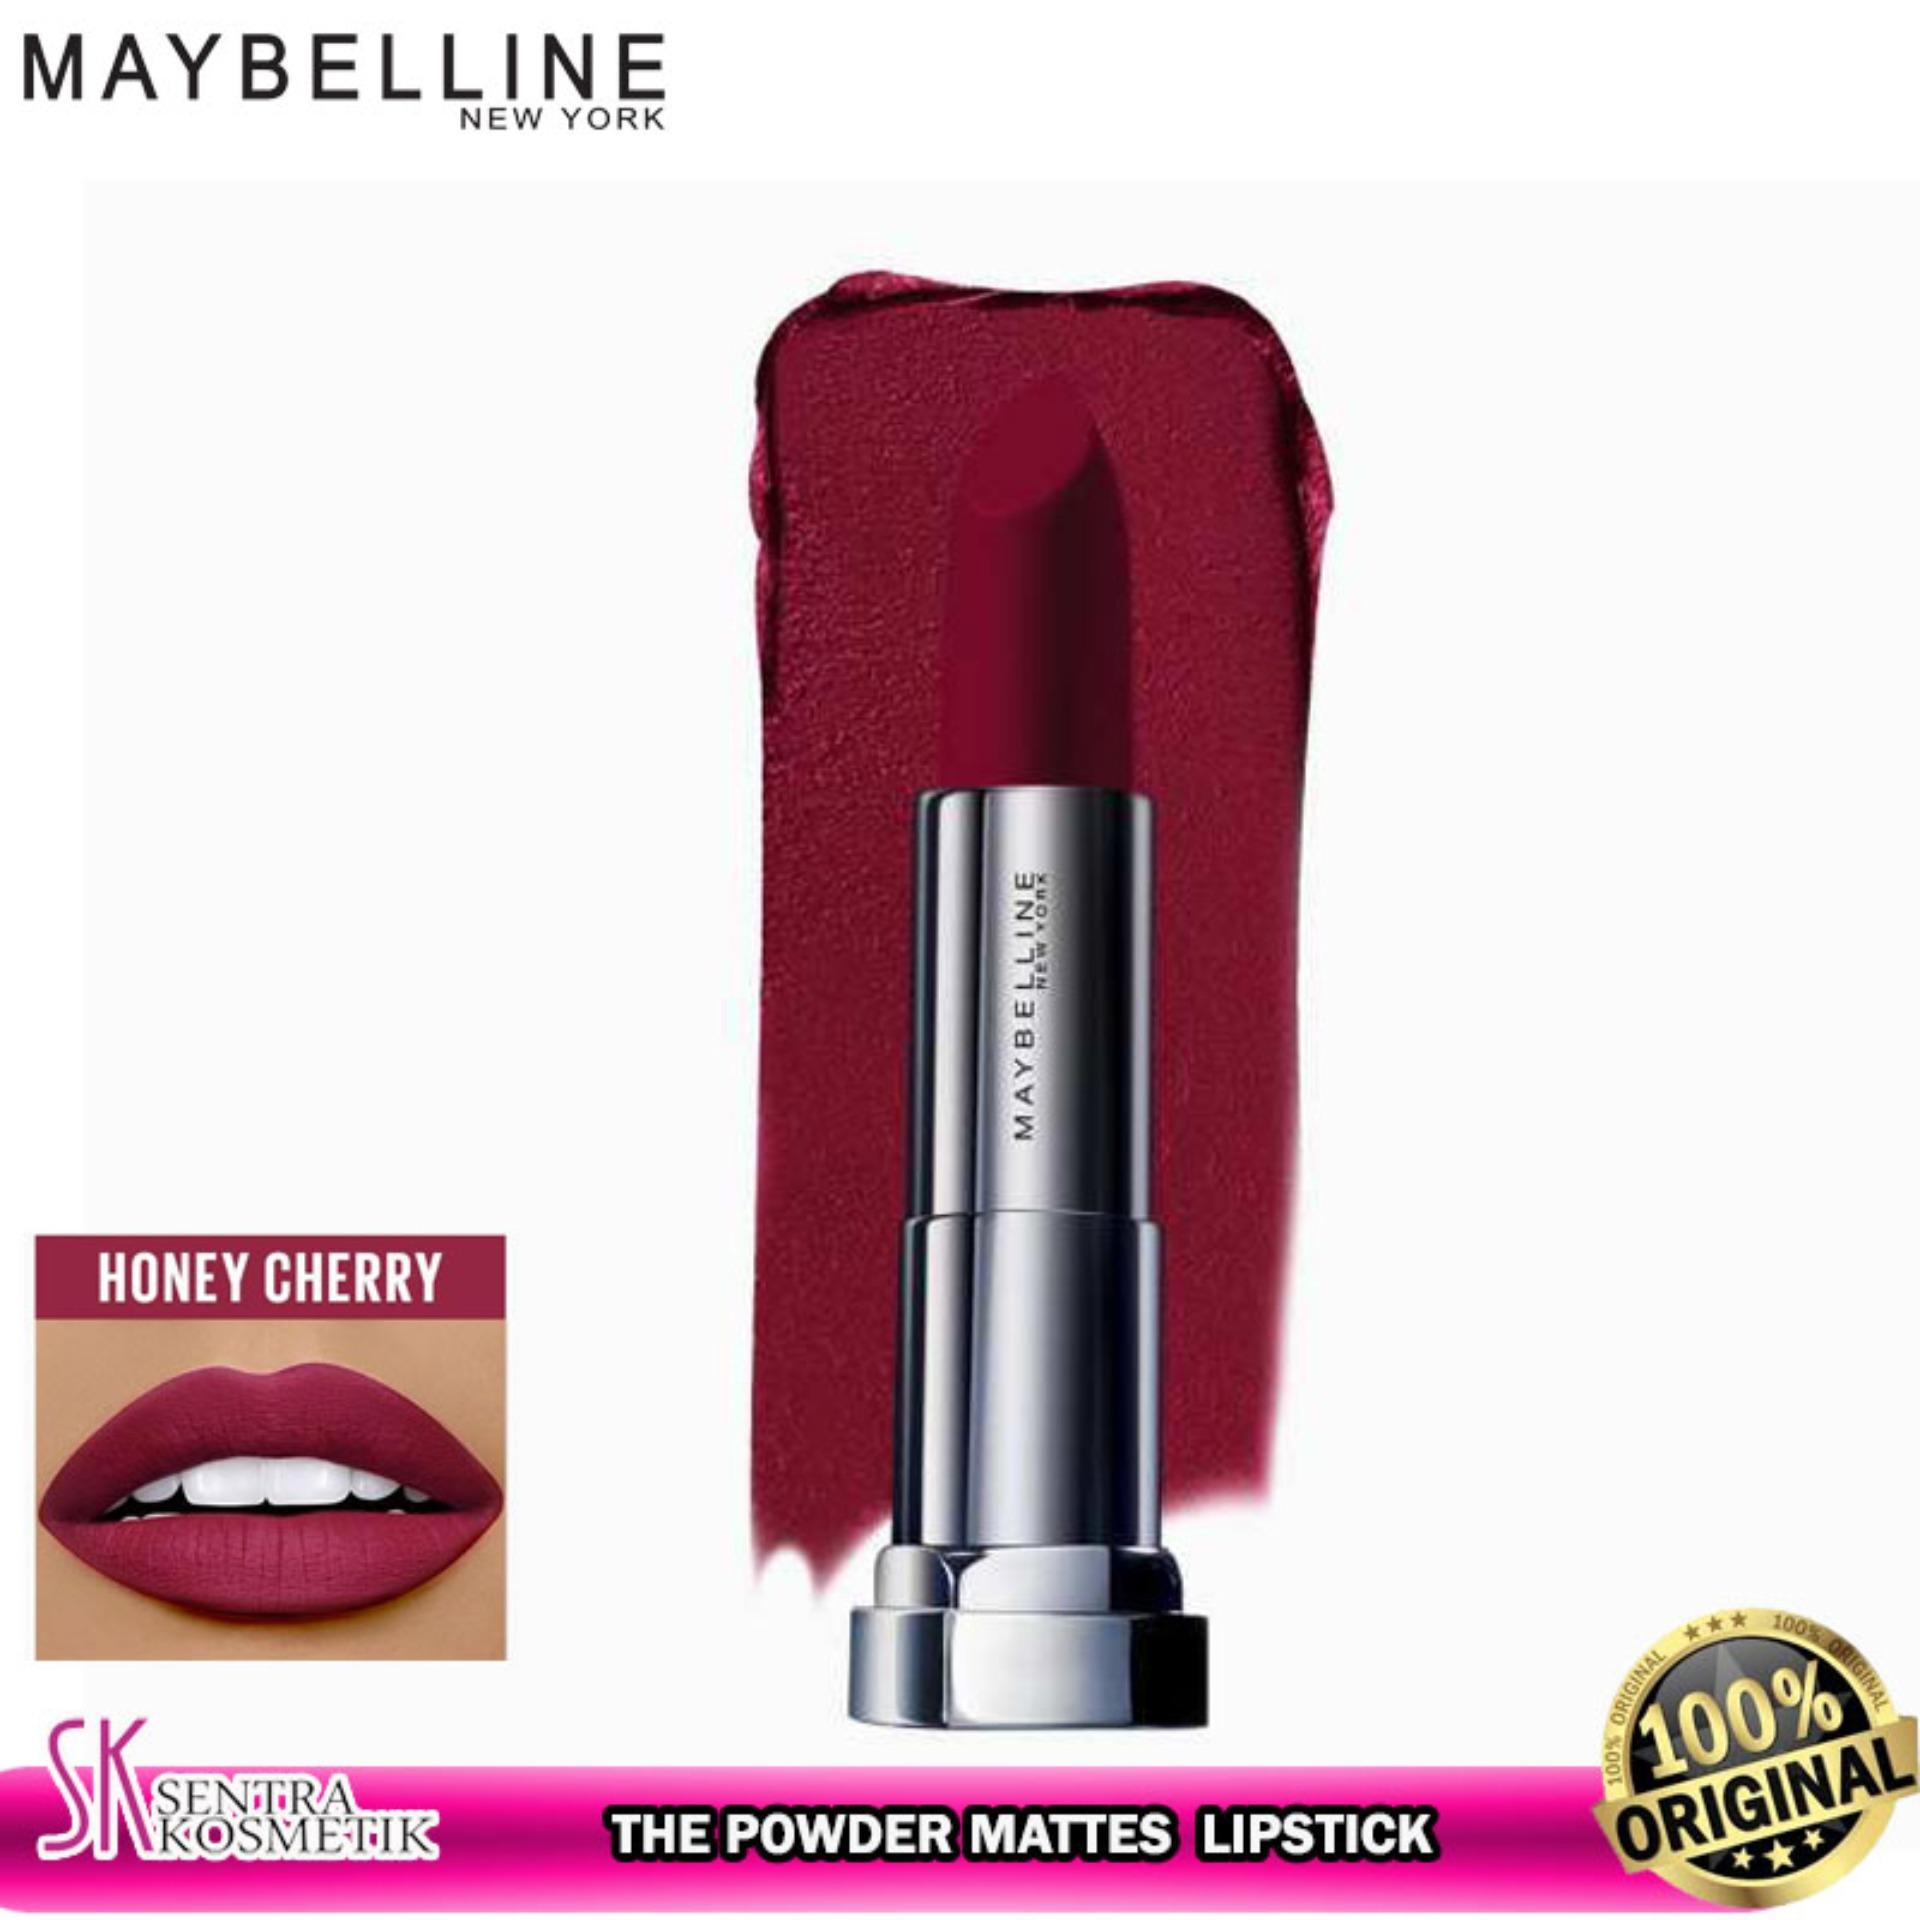 MAYBELLINE Color Sensational The Powder Mattes Lipstick - HONEY CHERRY